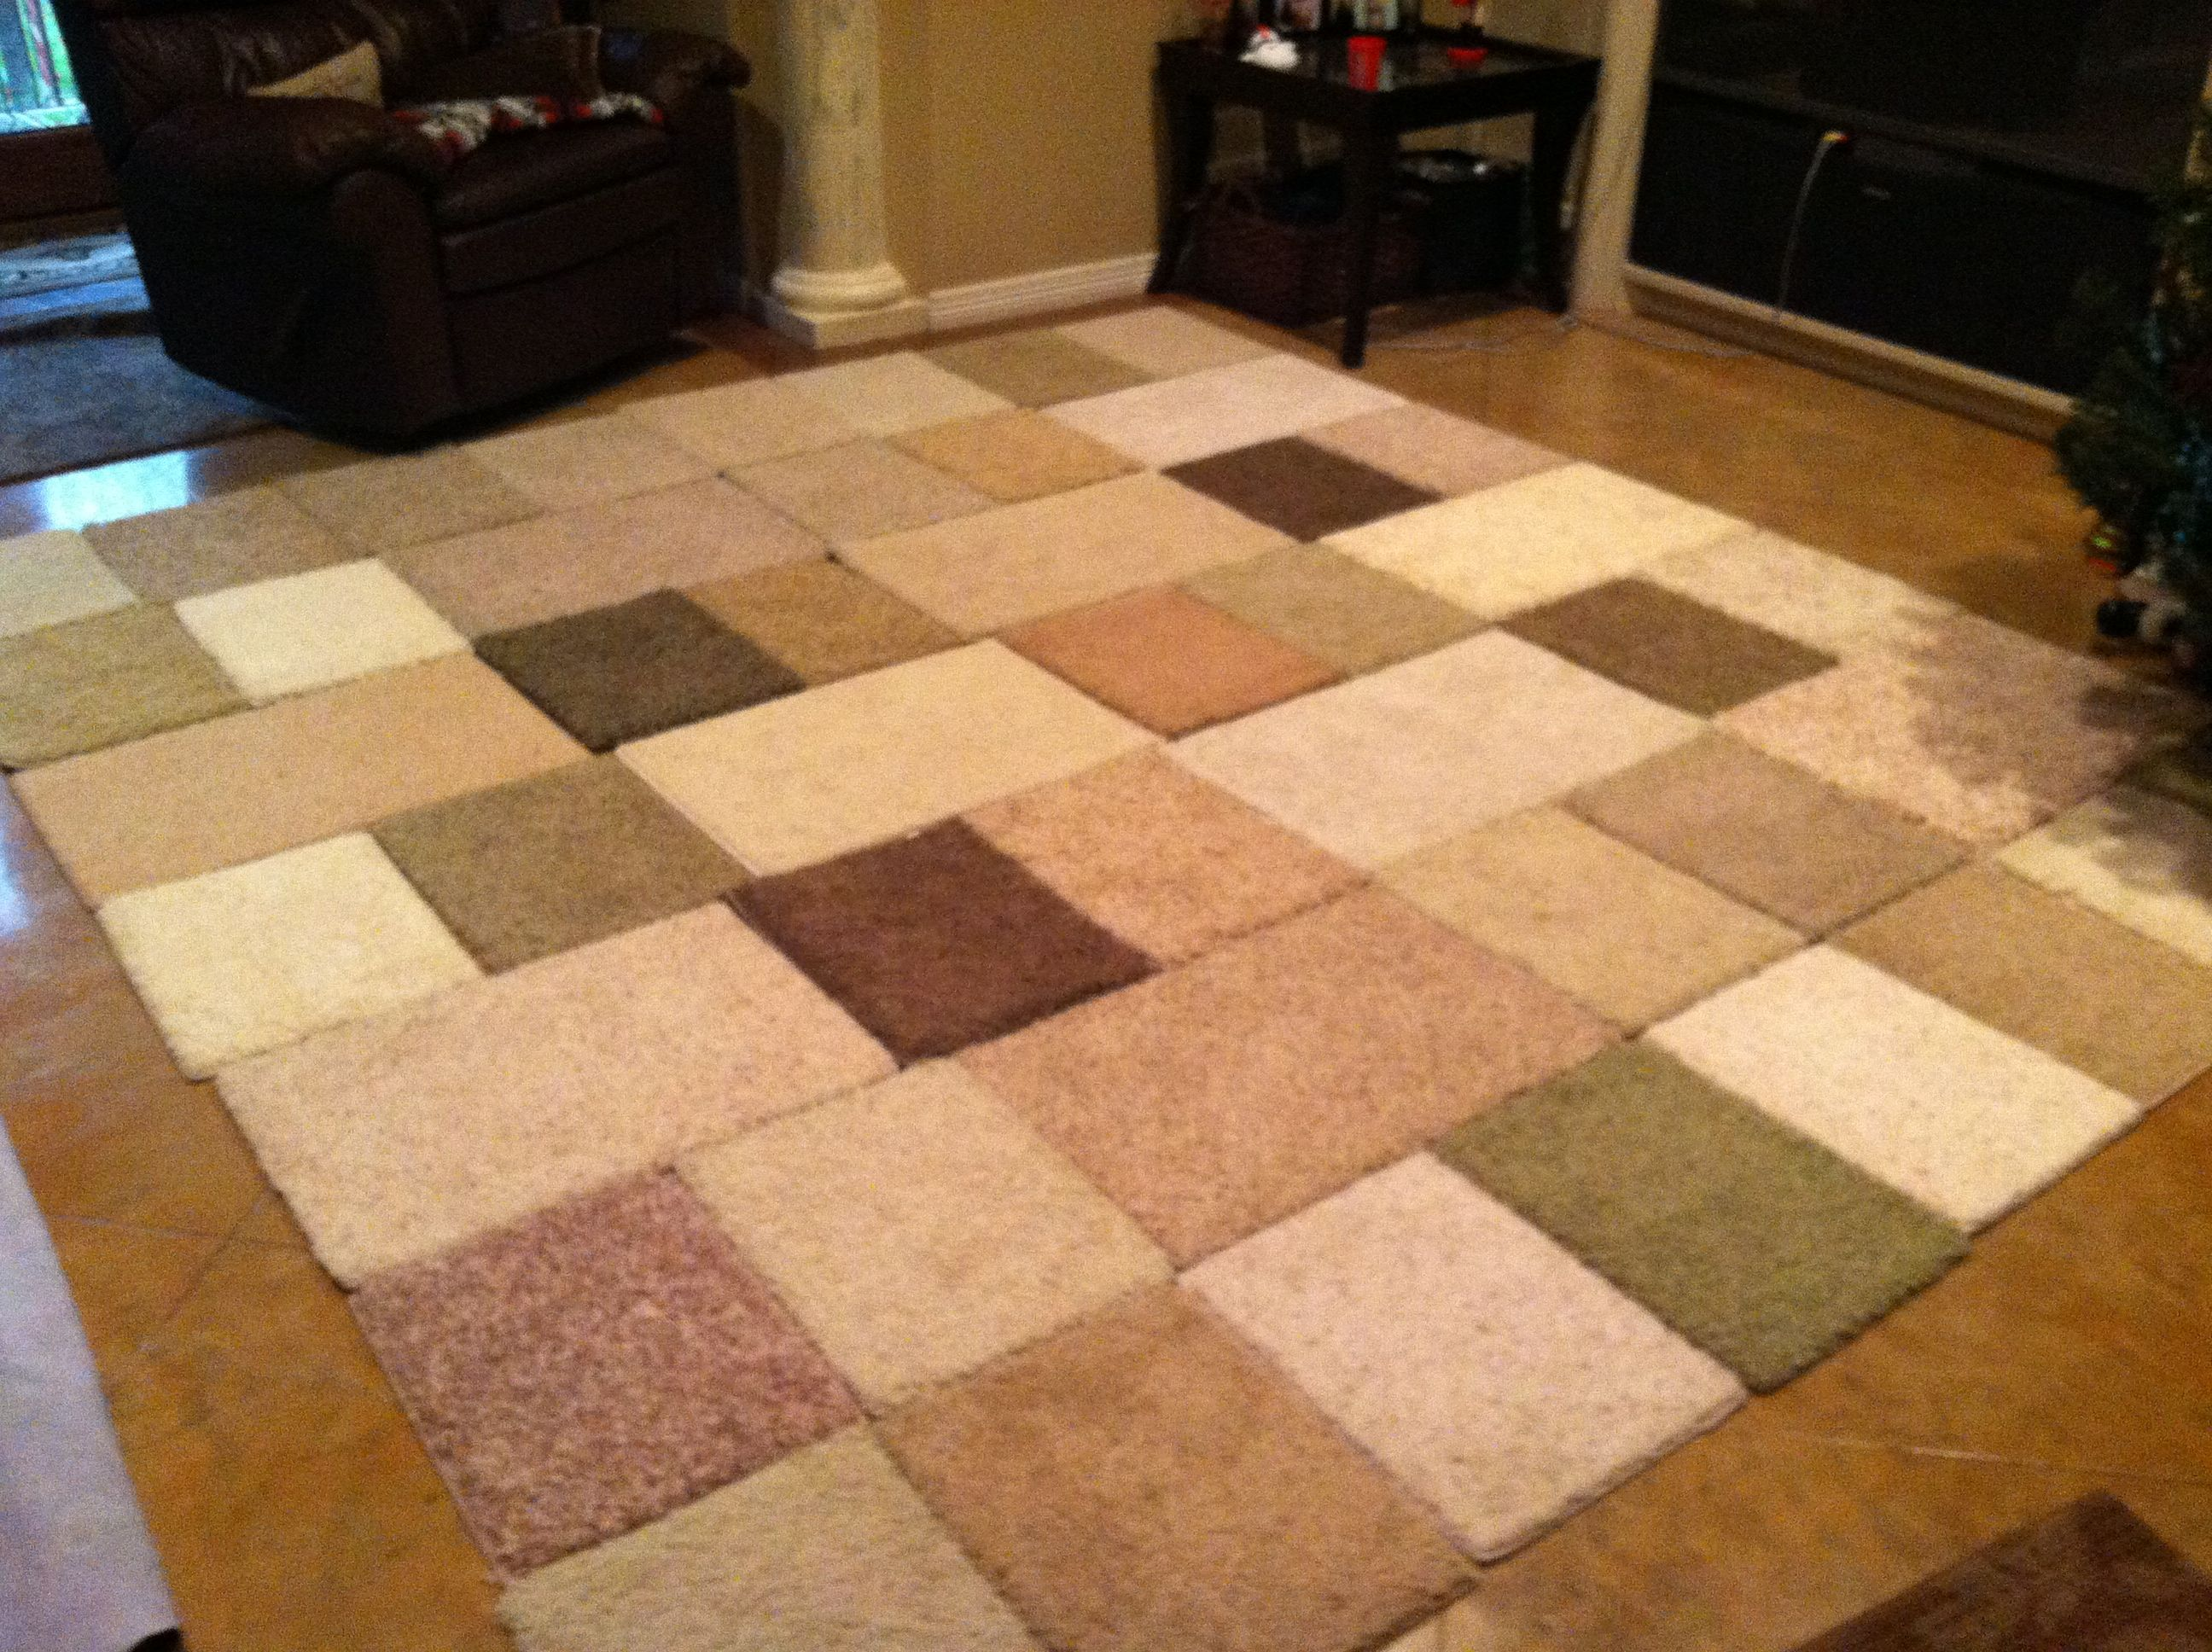 Diy Area Rug Made From Carpet Samples And Duck Tape 10ft X 9ft 27 50